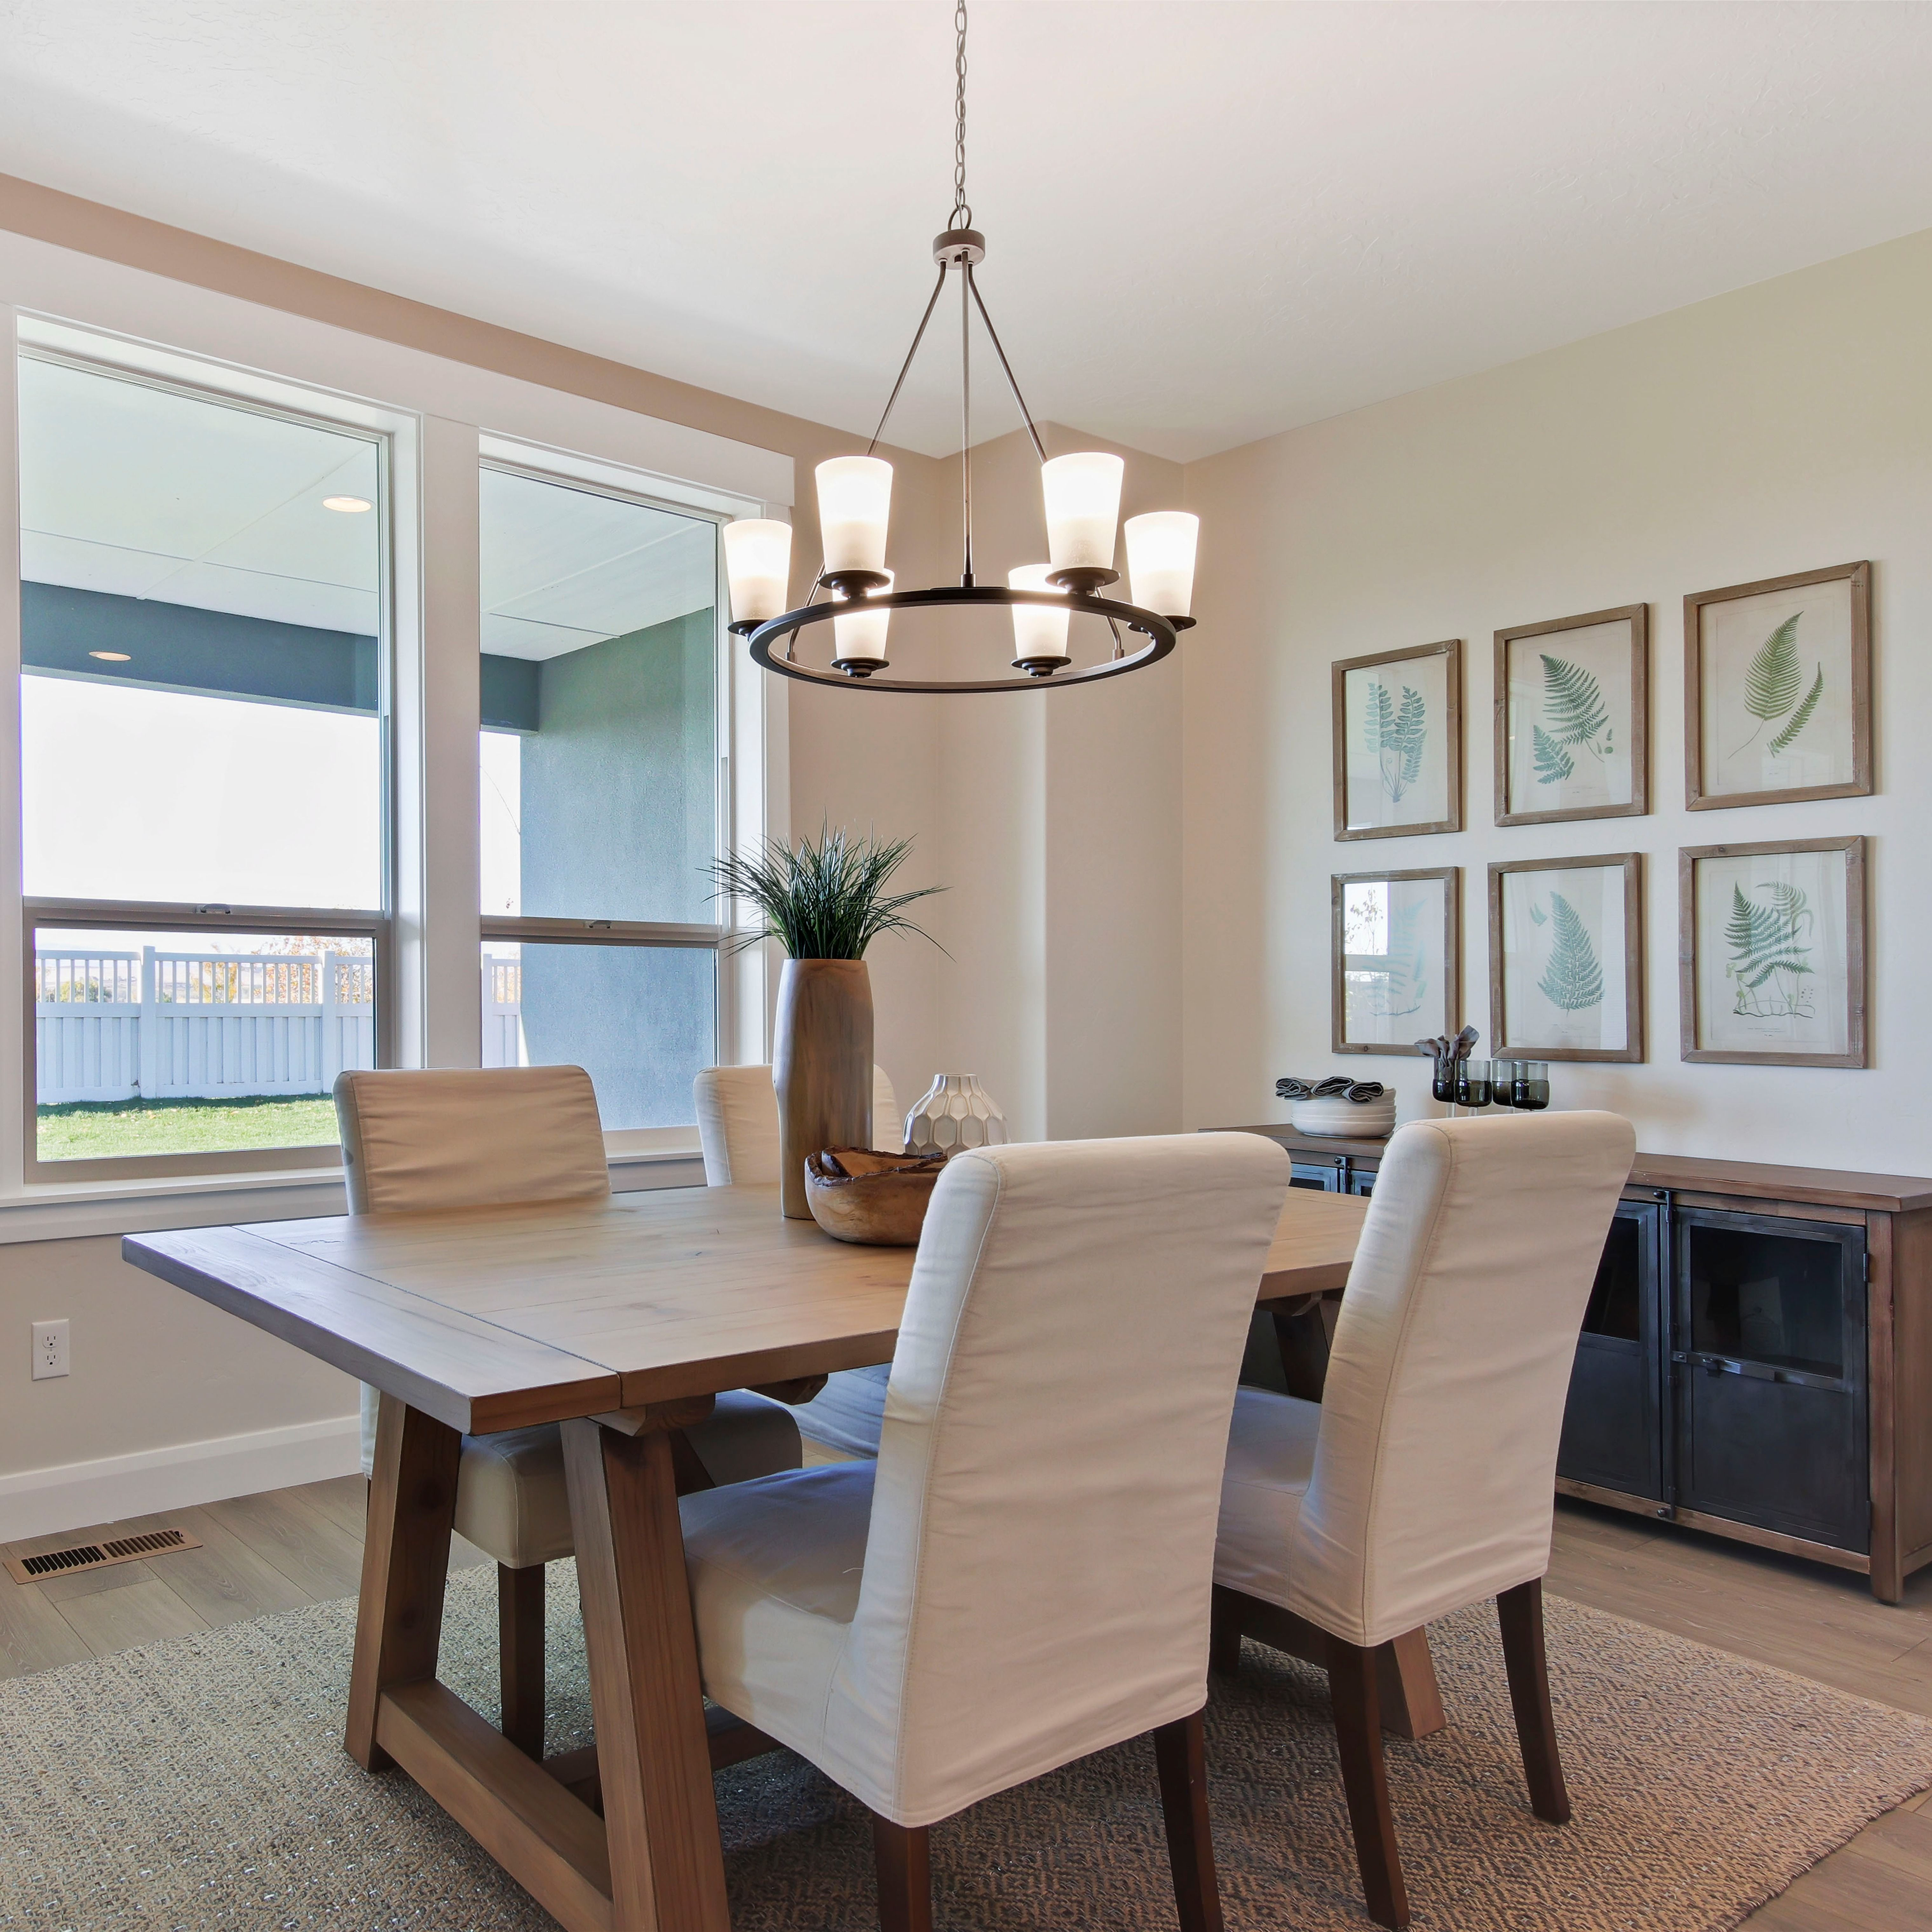 Vintage Modern Chandelier Featured In Custom Home Dining Room Design With Natural Decor Elements Dining Room Design Dining Room Spaces Modern Chandelier